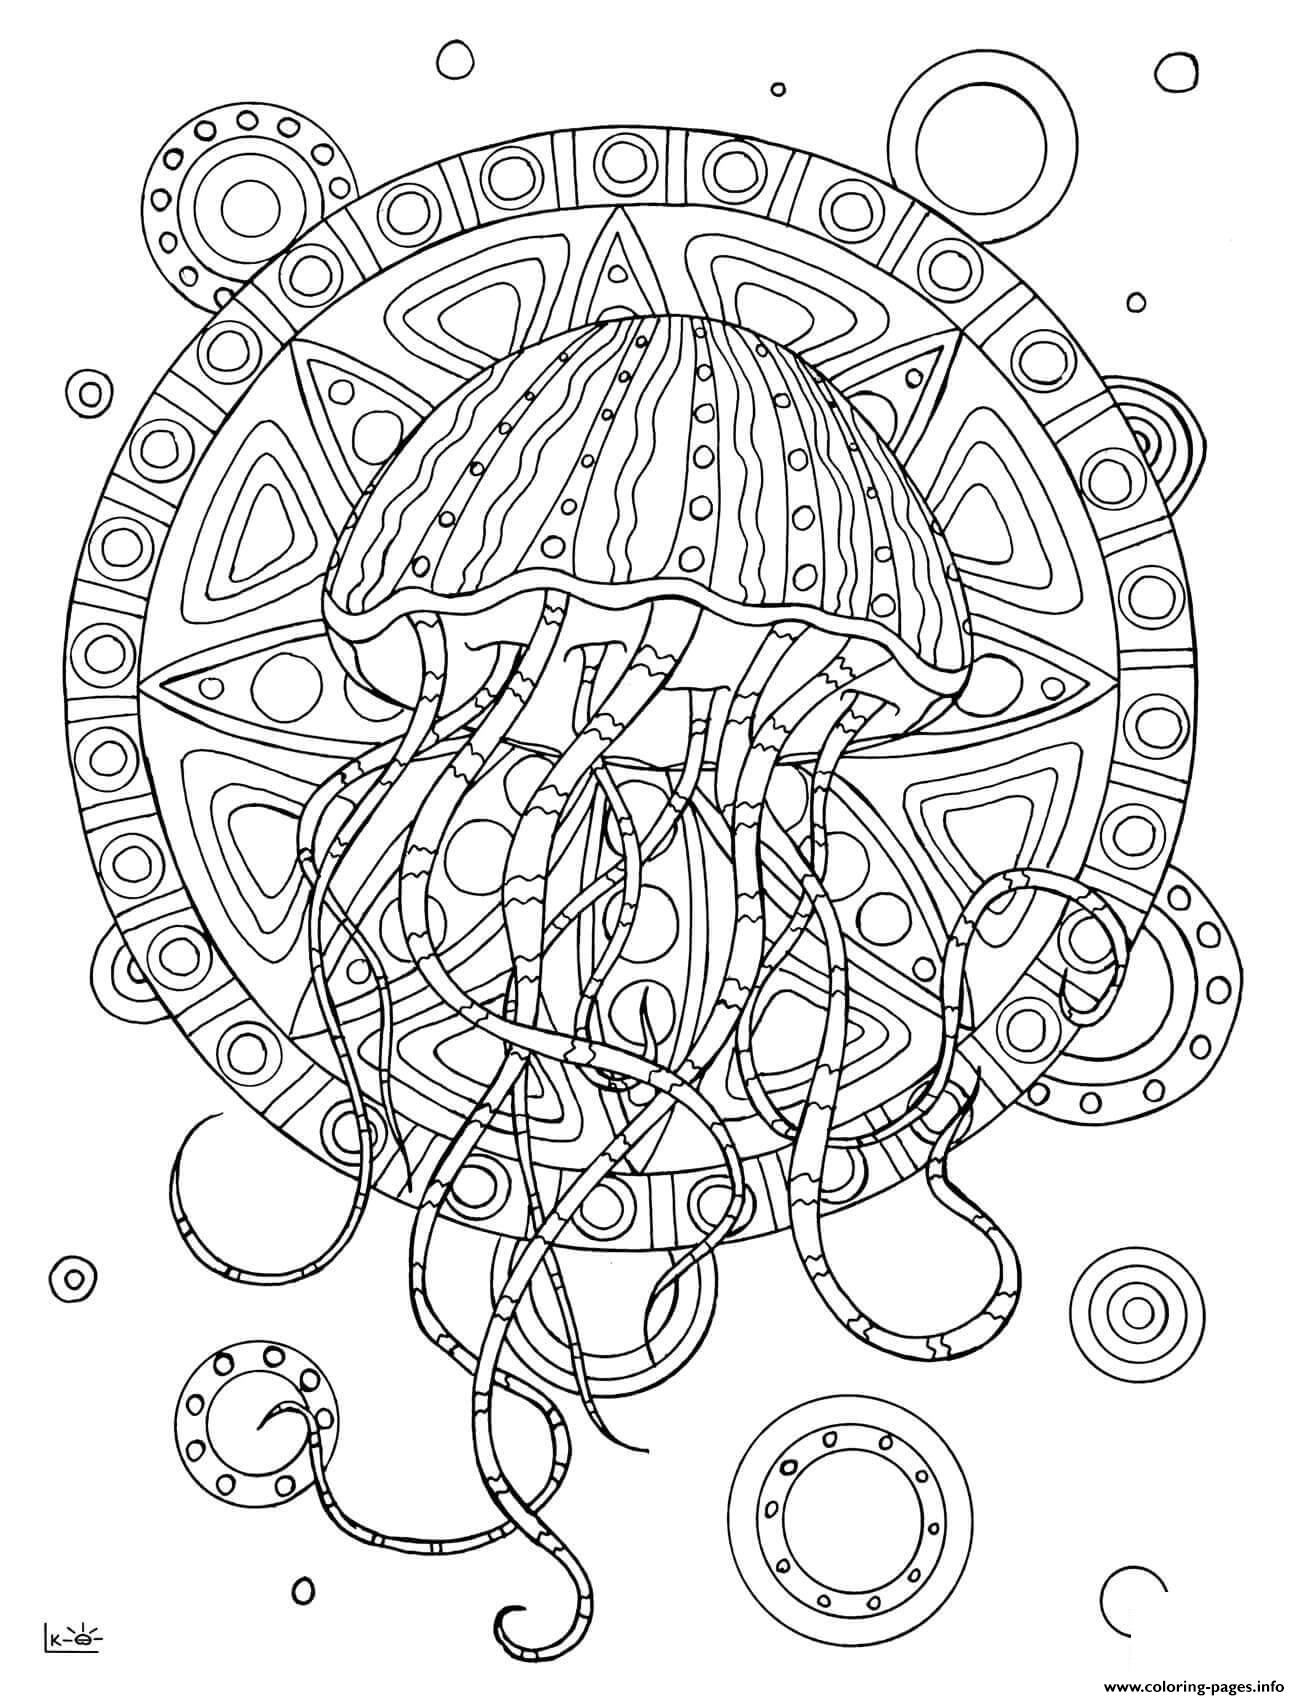 Kleurplaat Frozen Pdf Jellyfish With Tribal Pattern Adults Coloring Pages Printable